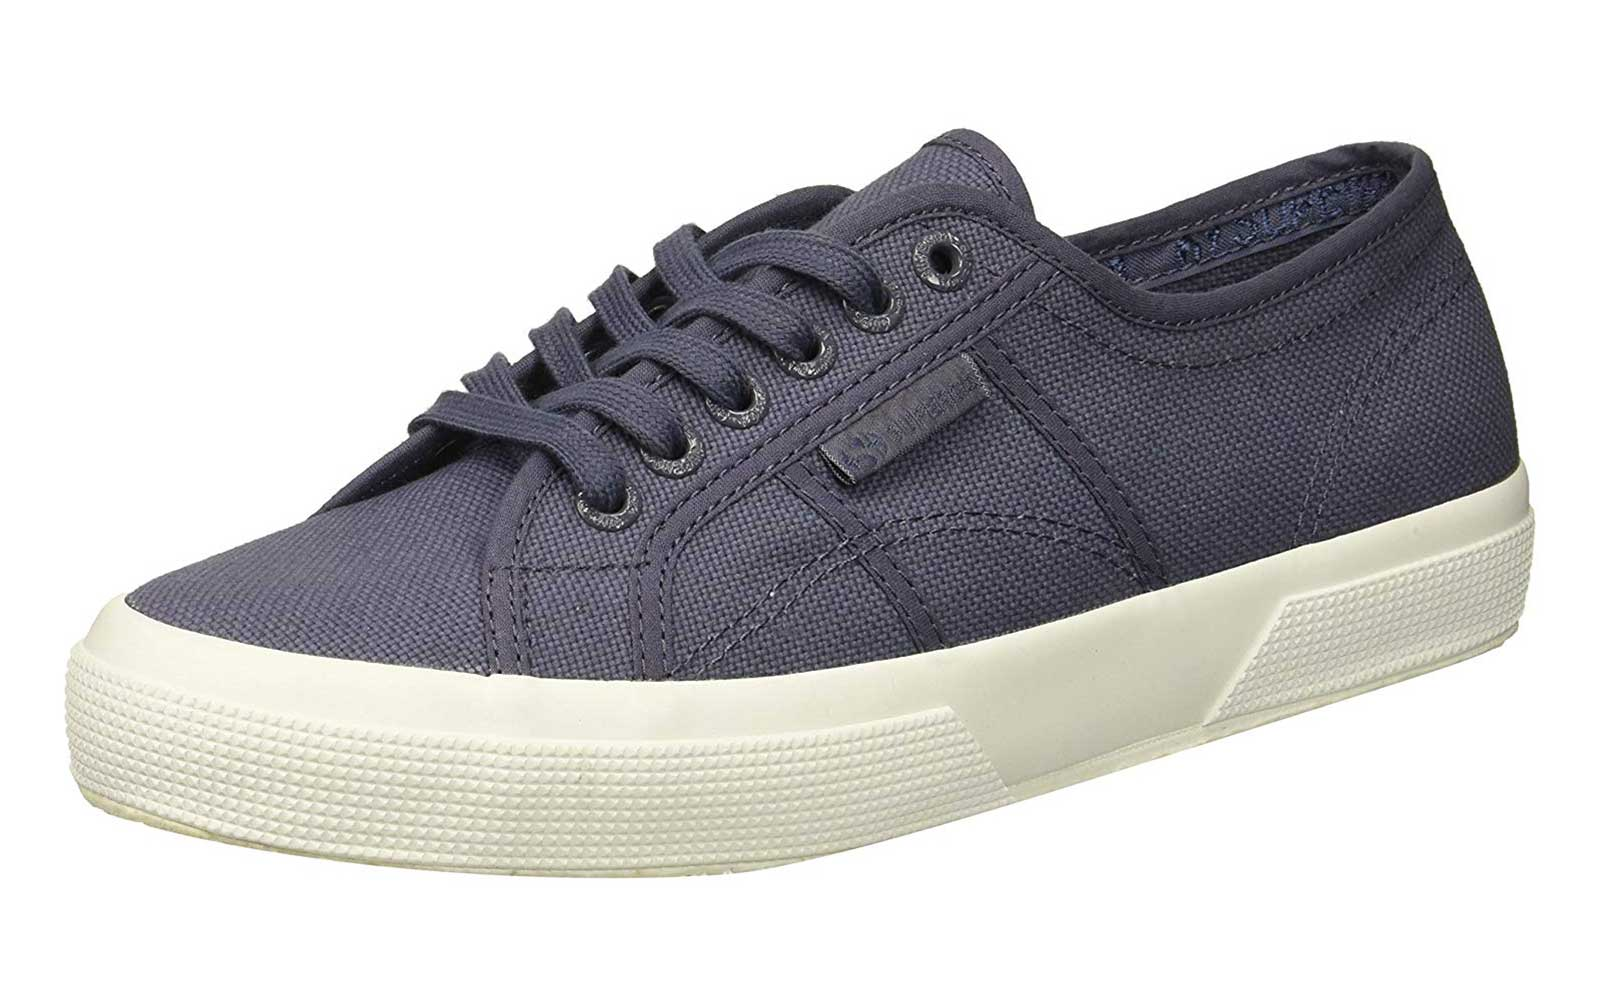 Superga sneakers for sale on Amazon